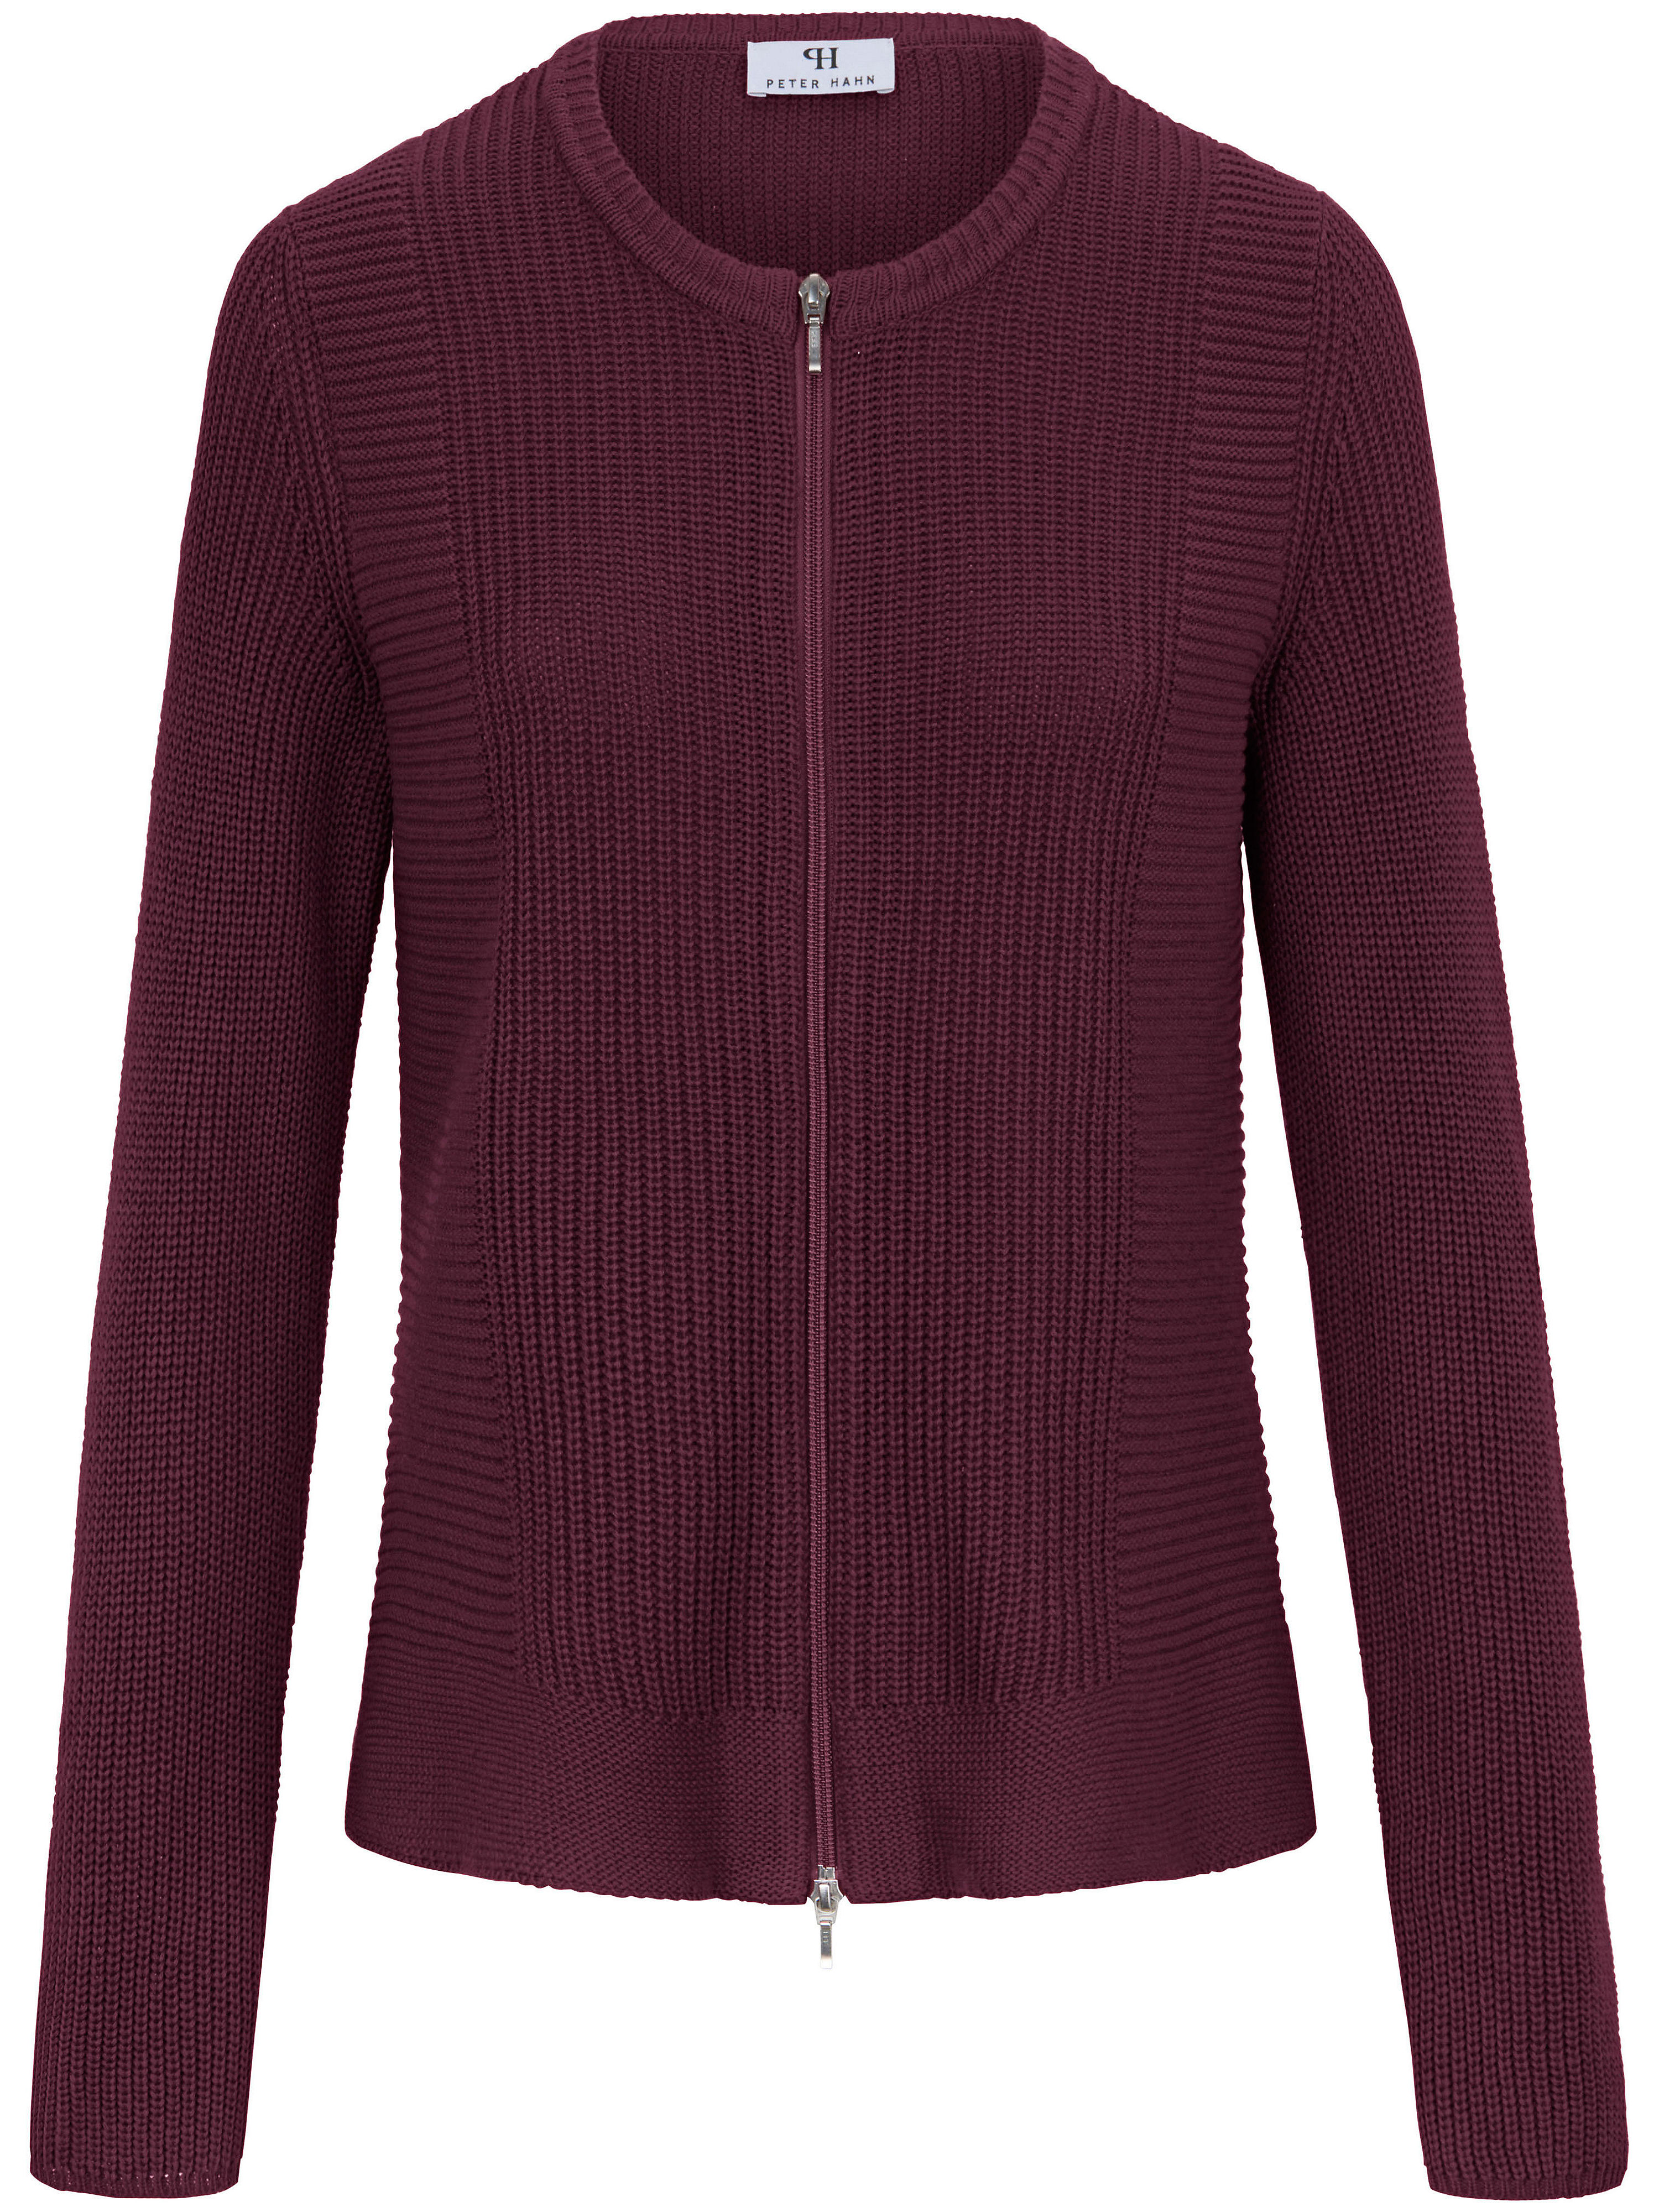 Le gilet  Peter Hahn rouge taille 54